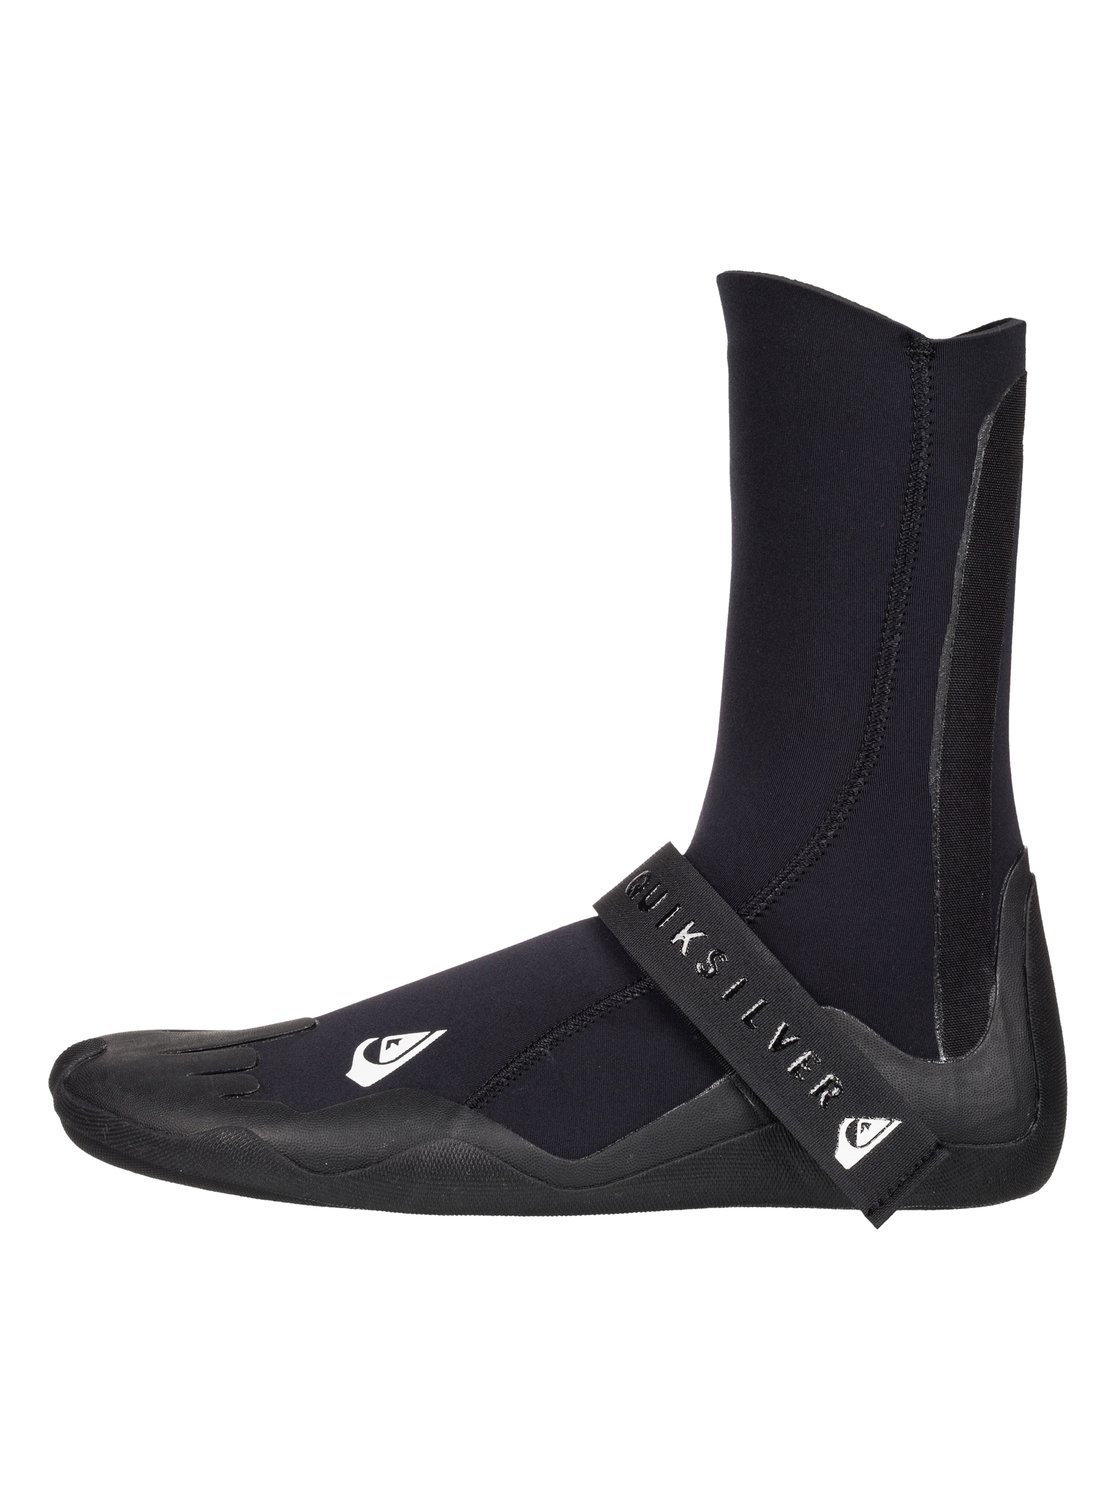 Quiksilver 3mm Syncro Round Toe Men's Watersports Boots - Black / 11 by Quiksilver